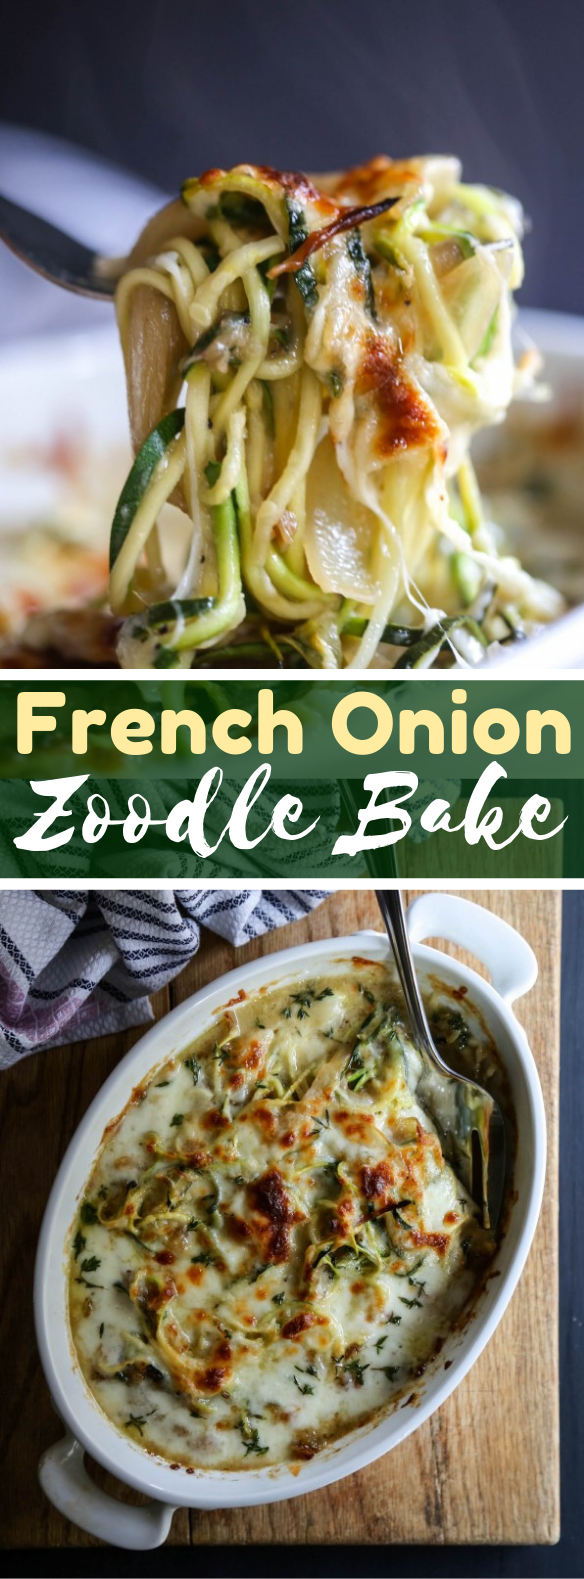 FRENCH ONION ZOODLE BAKE #vegetarian #healthy